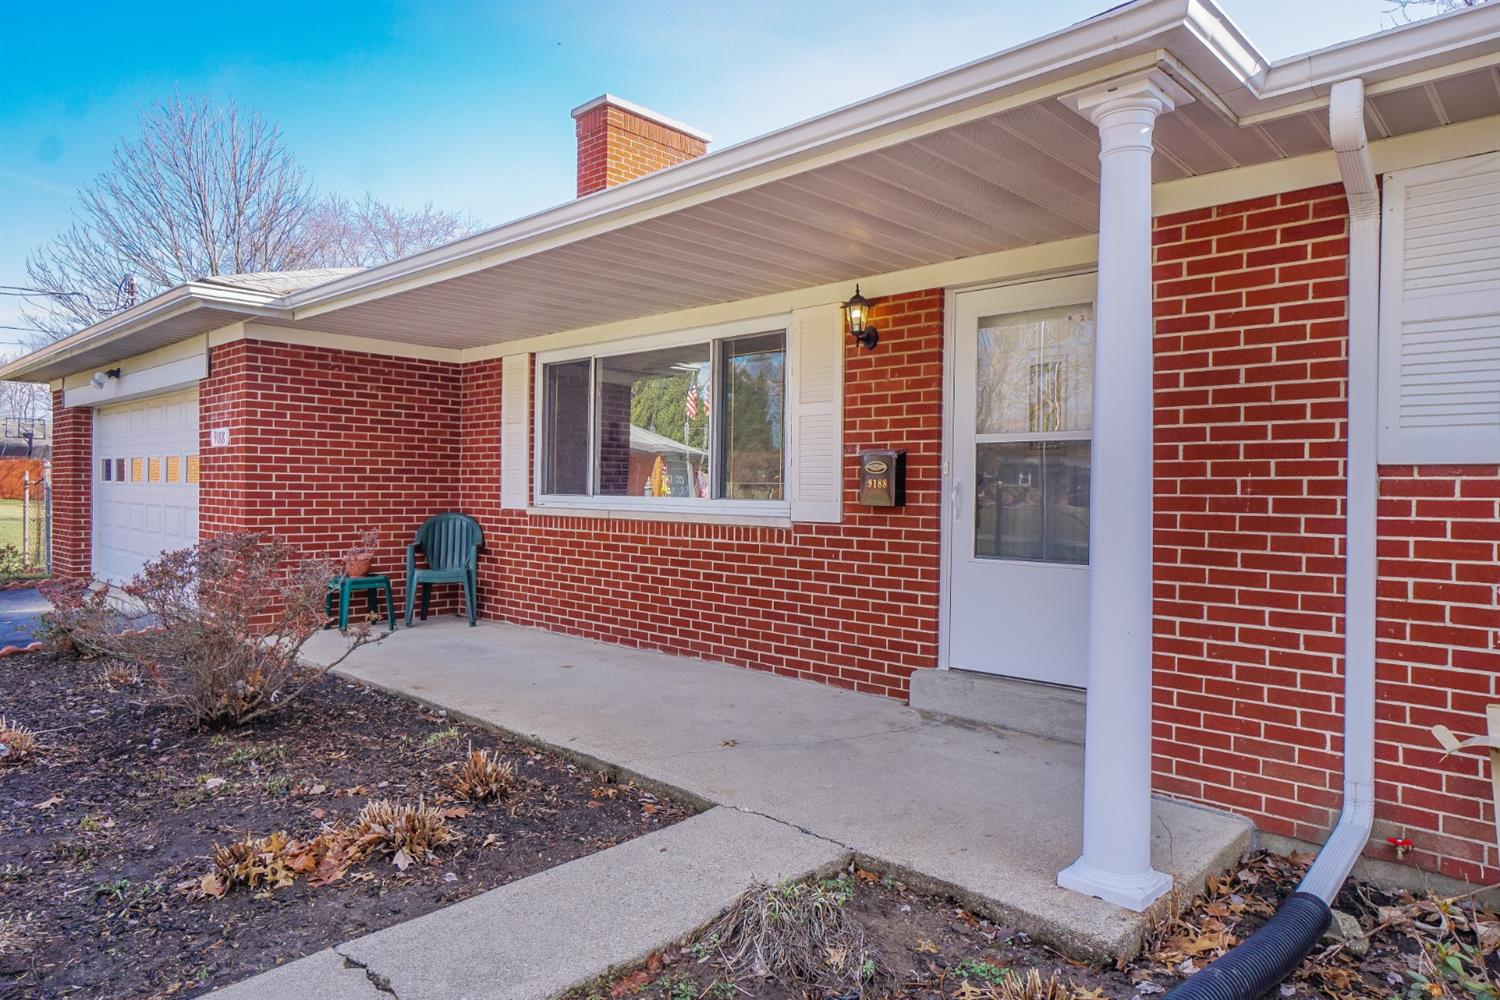 Photo 2 for 9188 Scamper Ln Blue Ash, OH 45242